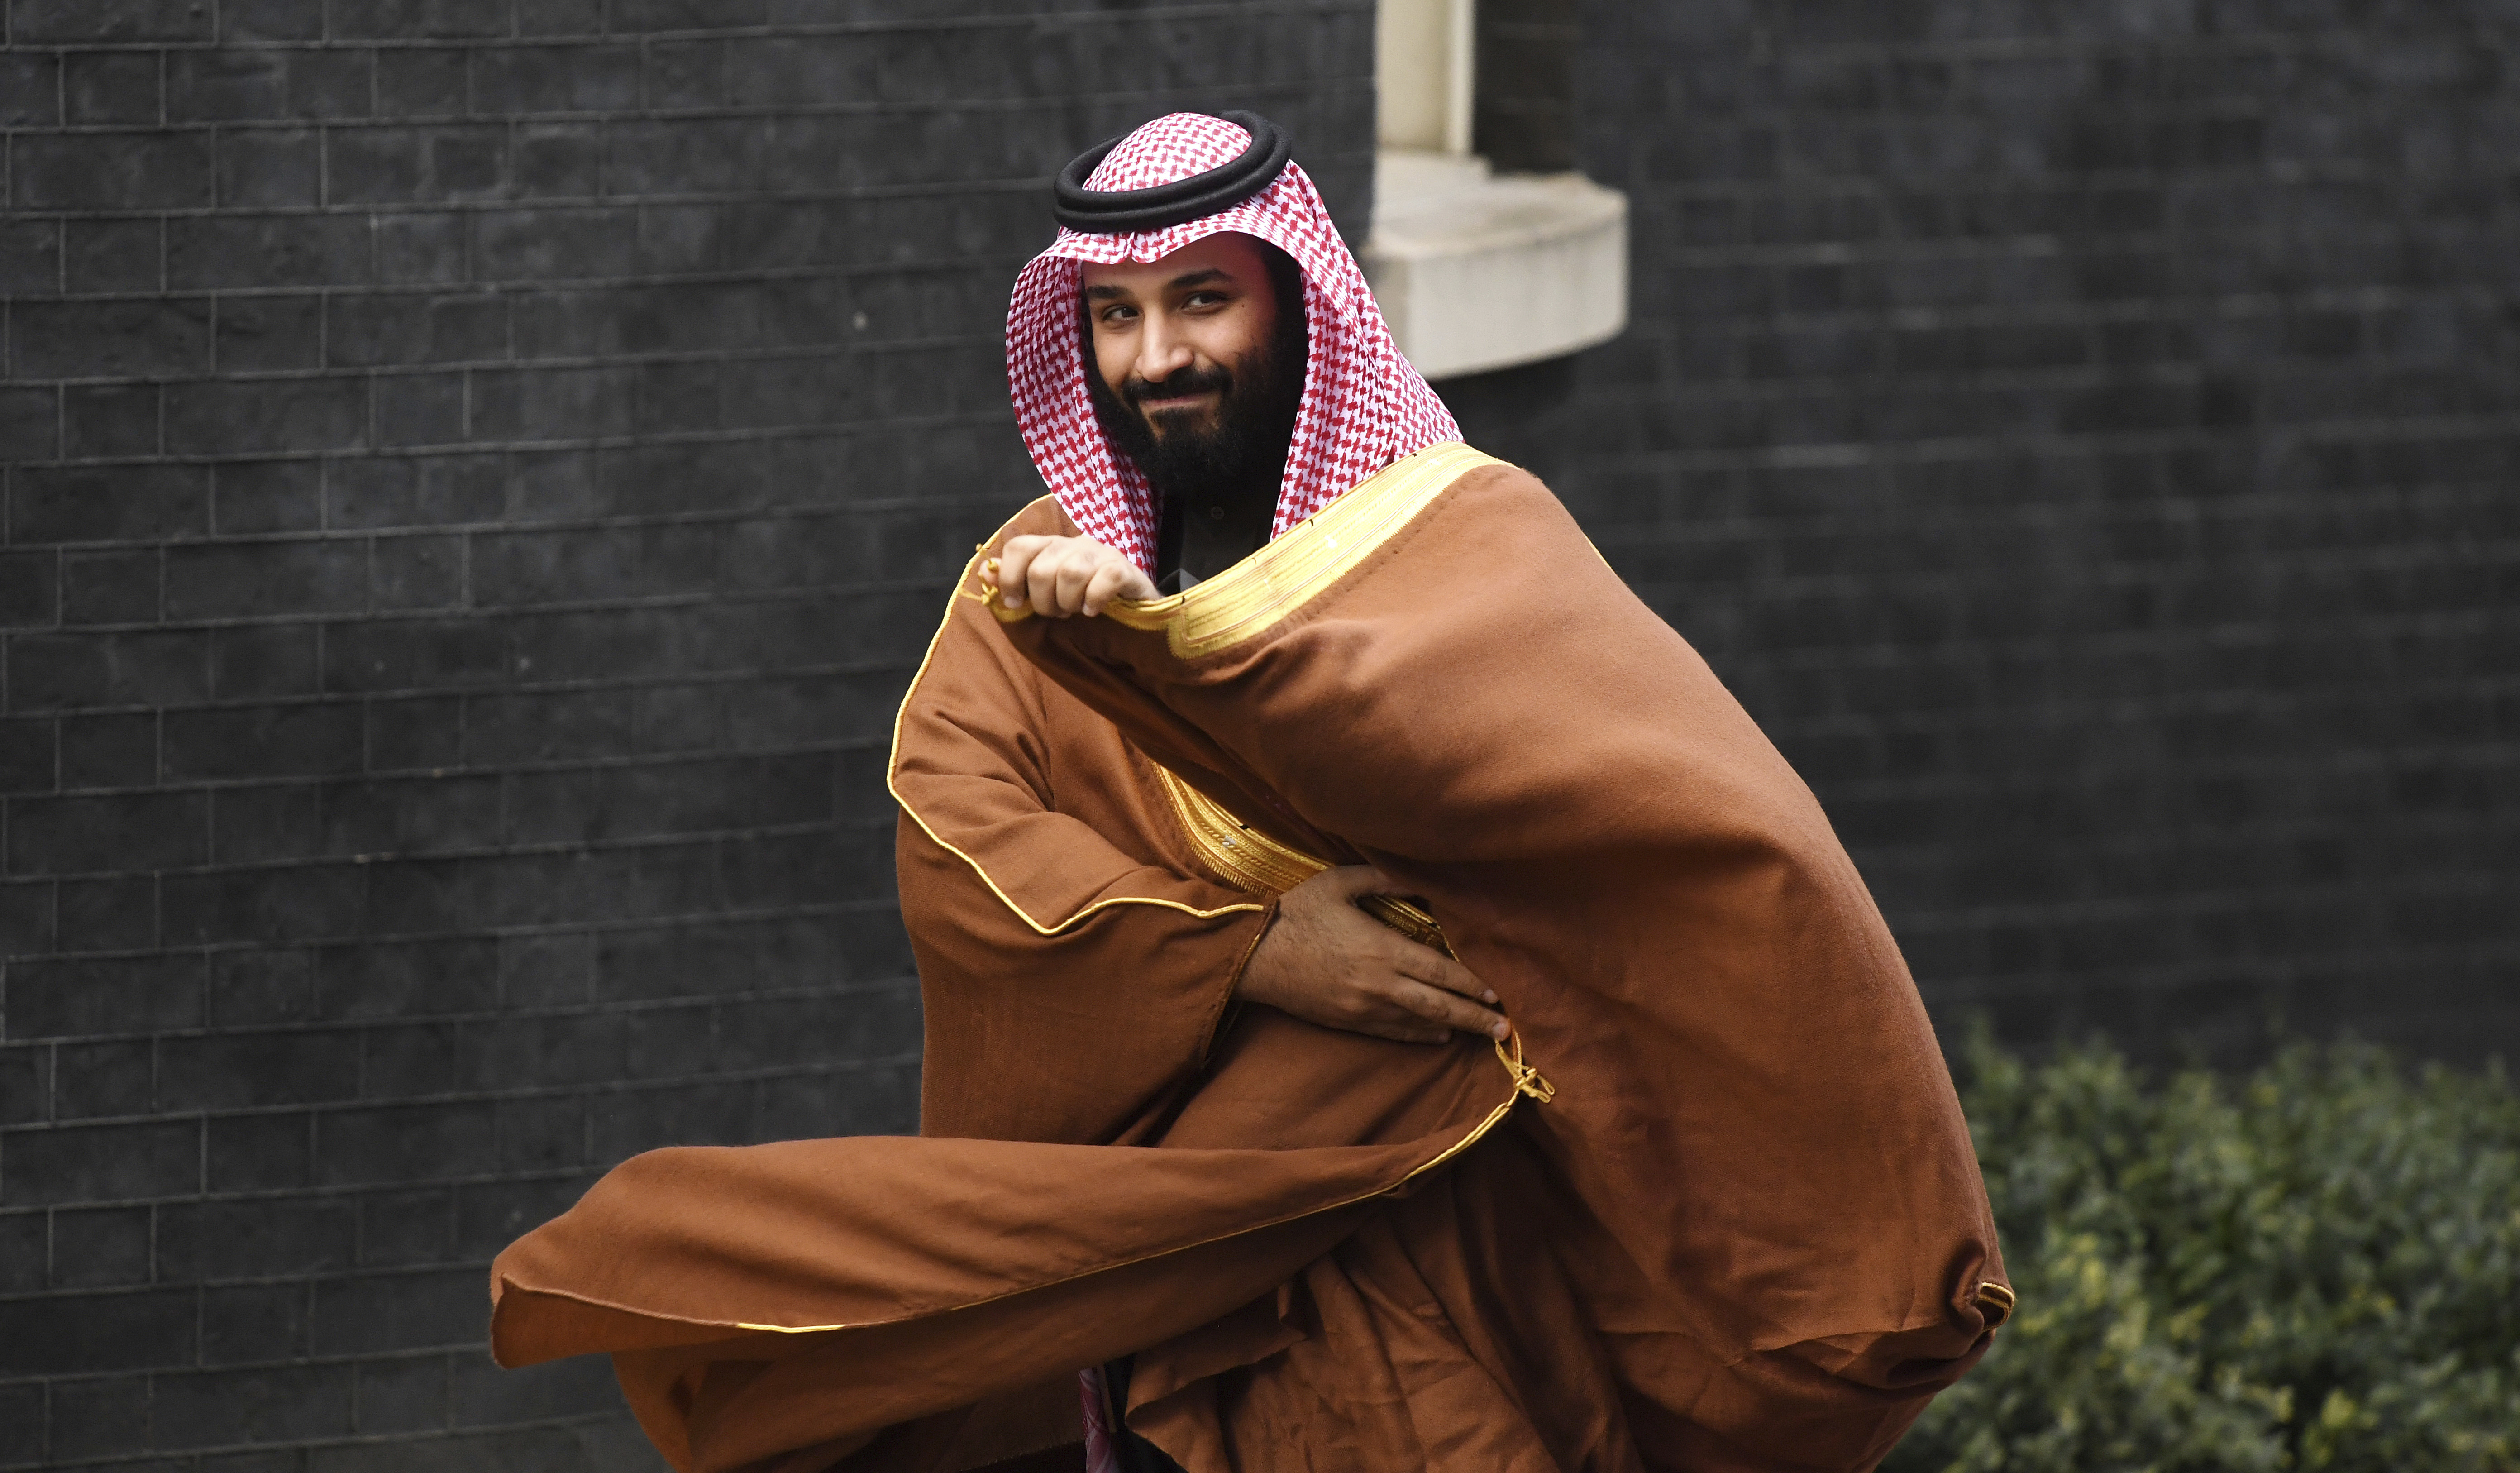 Mohammed bin Salman File Photo. File photo dated 07-03-2018 of Saudi Arabia's crown prince Mohammad bin Salman. Issue date: Tuesday April 21, 2020. Amnesty International has written to the Premier League saying it 'risks becoming a patsy' unless it takes a serious look at Saudi Arabia's human rights record with regard to the takeover of Newcastle. The north-east club are reportedly on the verge of being sold to a Saudi-backed consortium which involves Crown Prince Mohammed bin Salman for around '300million. See PA story SOCCER Newcastle. Photo credit should read Victoria Jones/PA Wire. URN:53486321 (Press Association via AP Images)